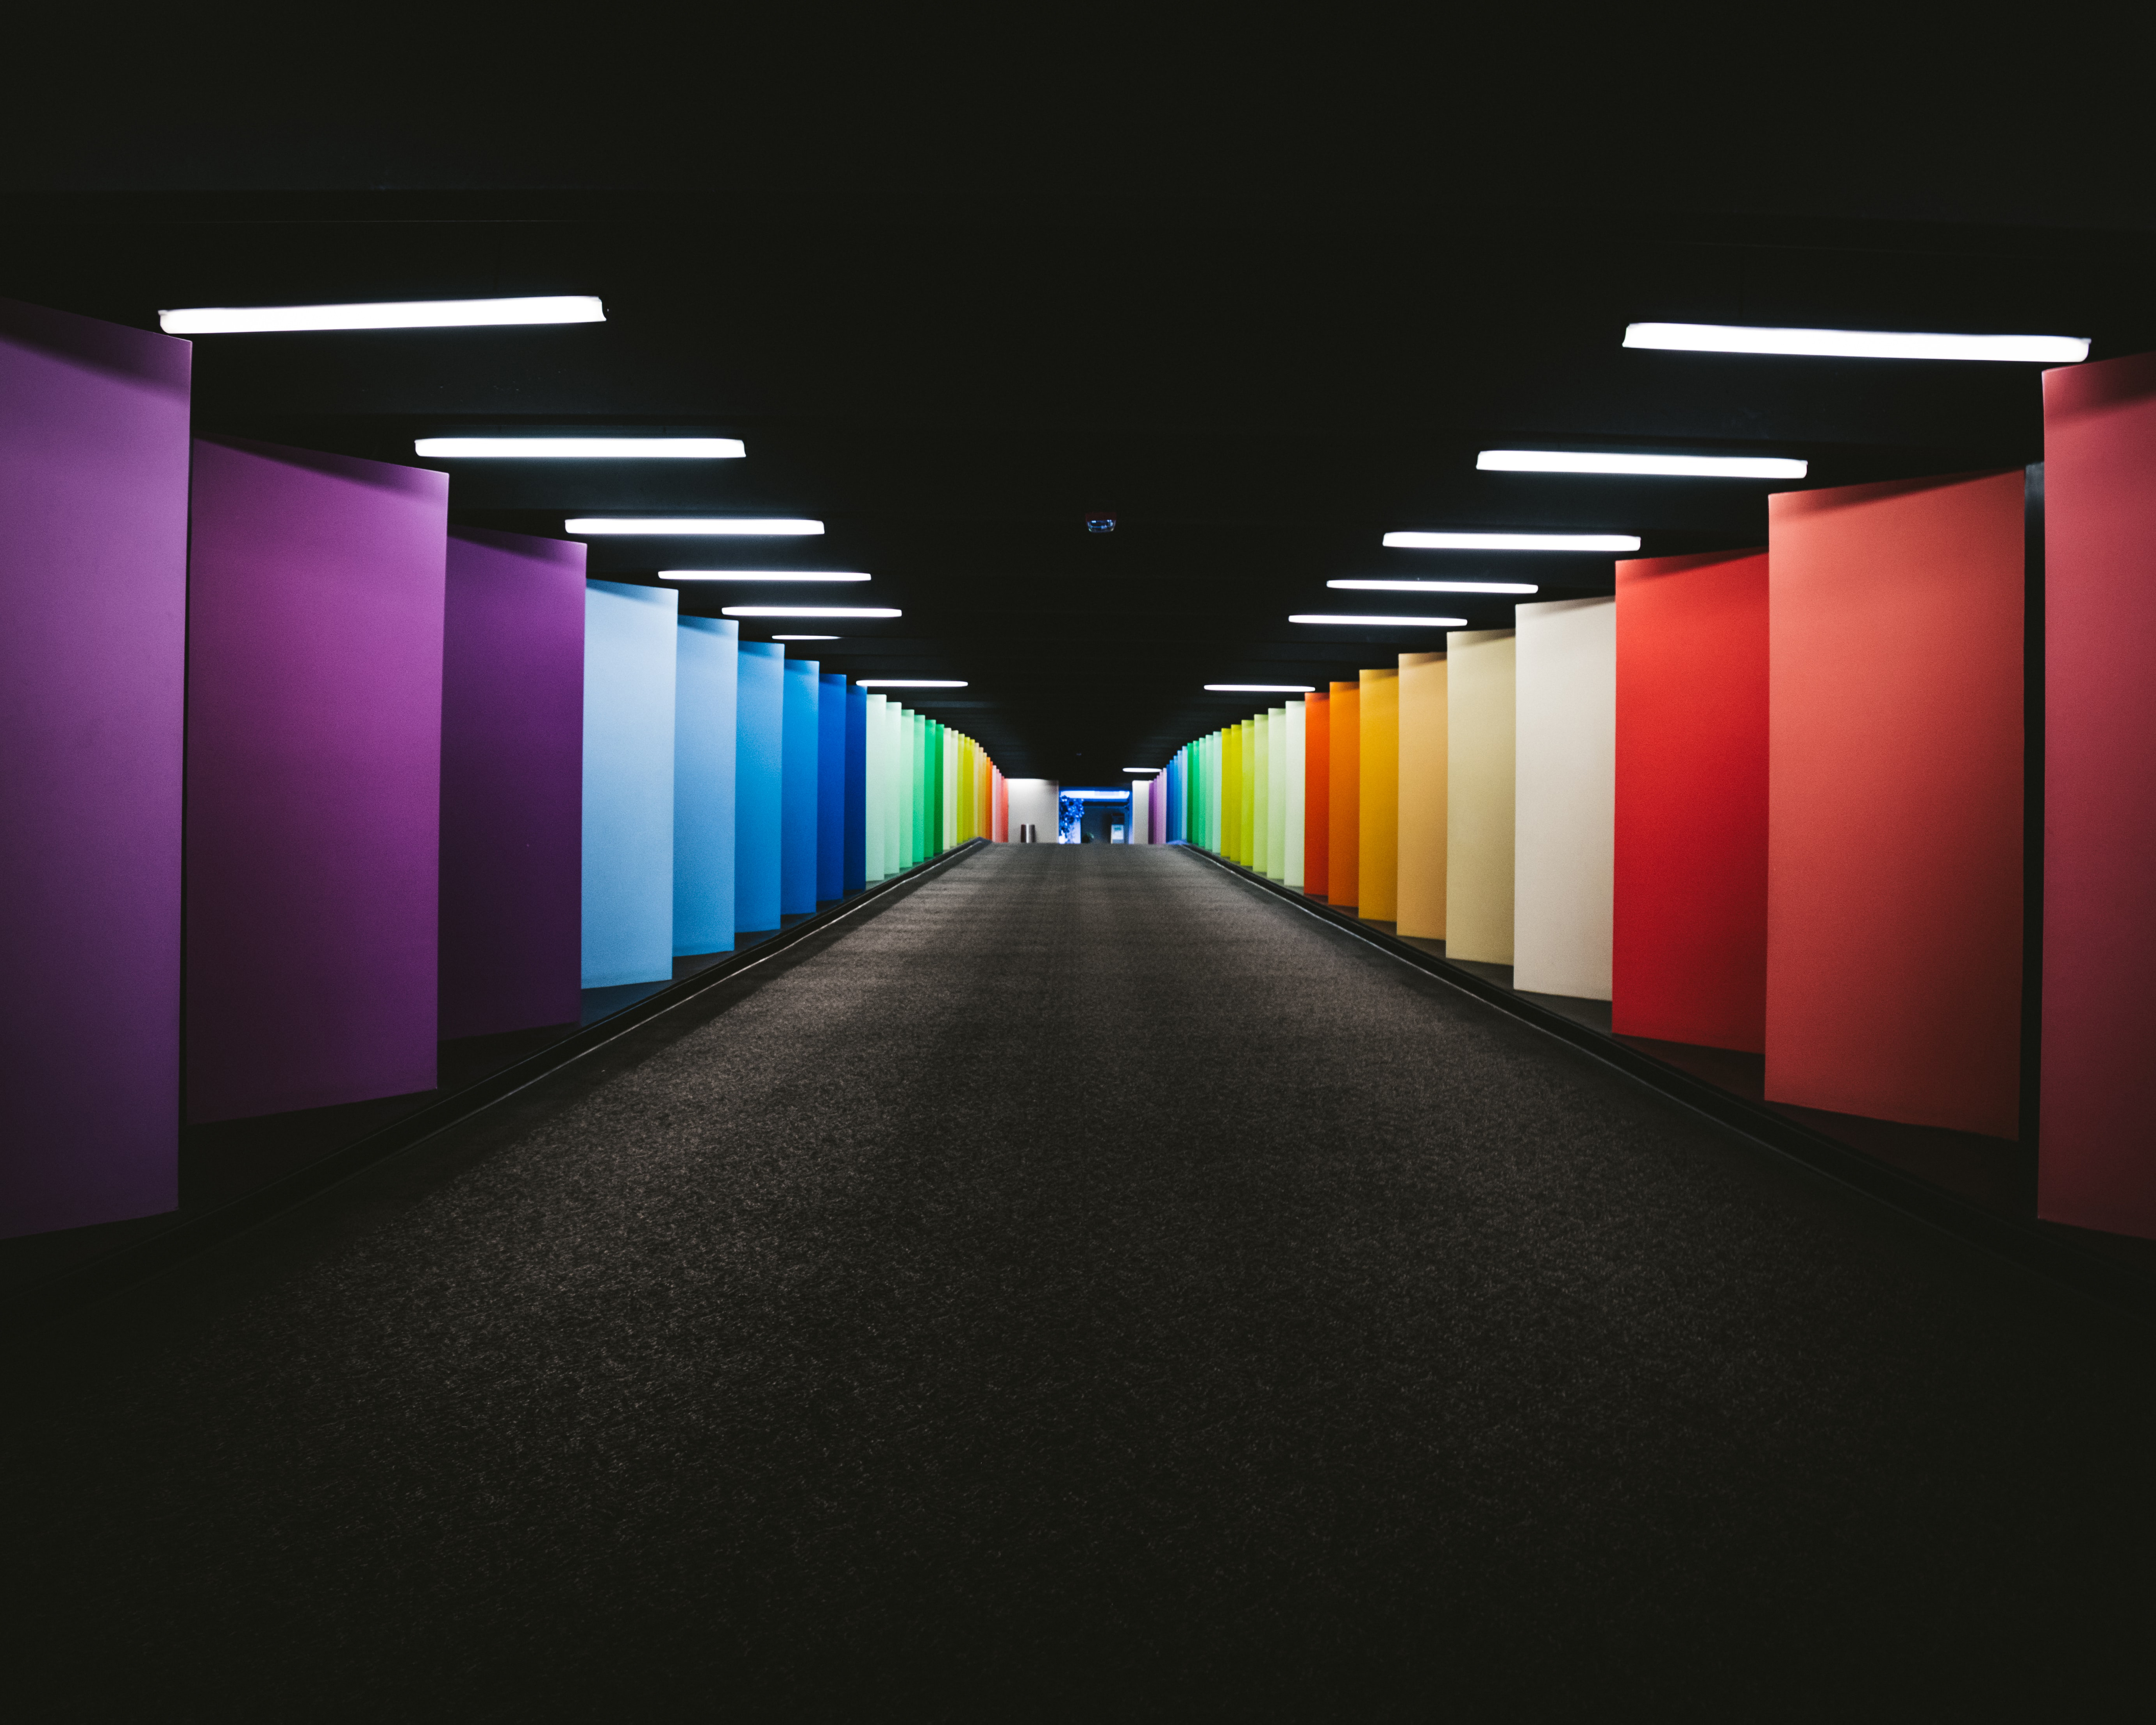 69354 download wallpaper Walls, Miscellanea, Miscellaneous, Multicolored, Motley, Tunnel screensavers and pictures for free